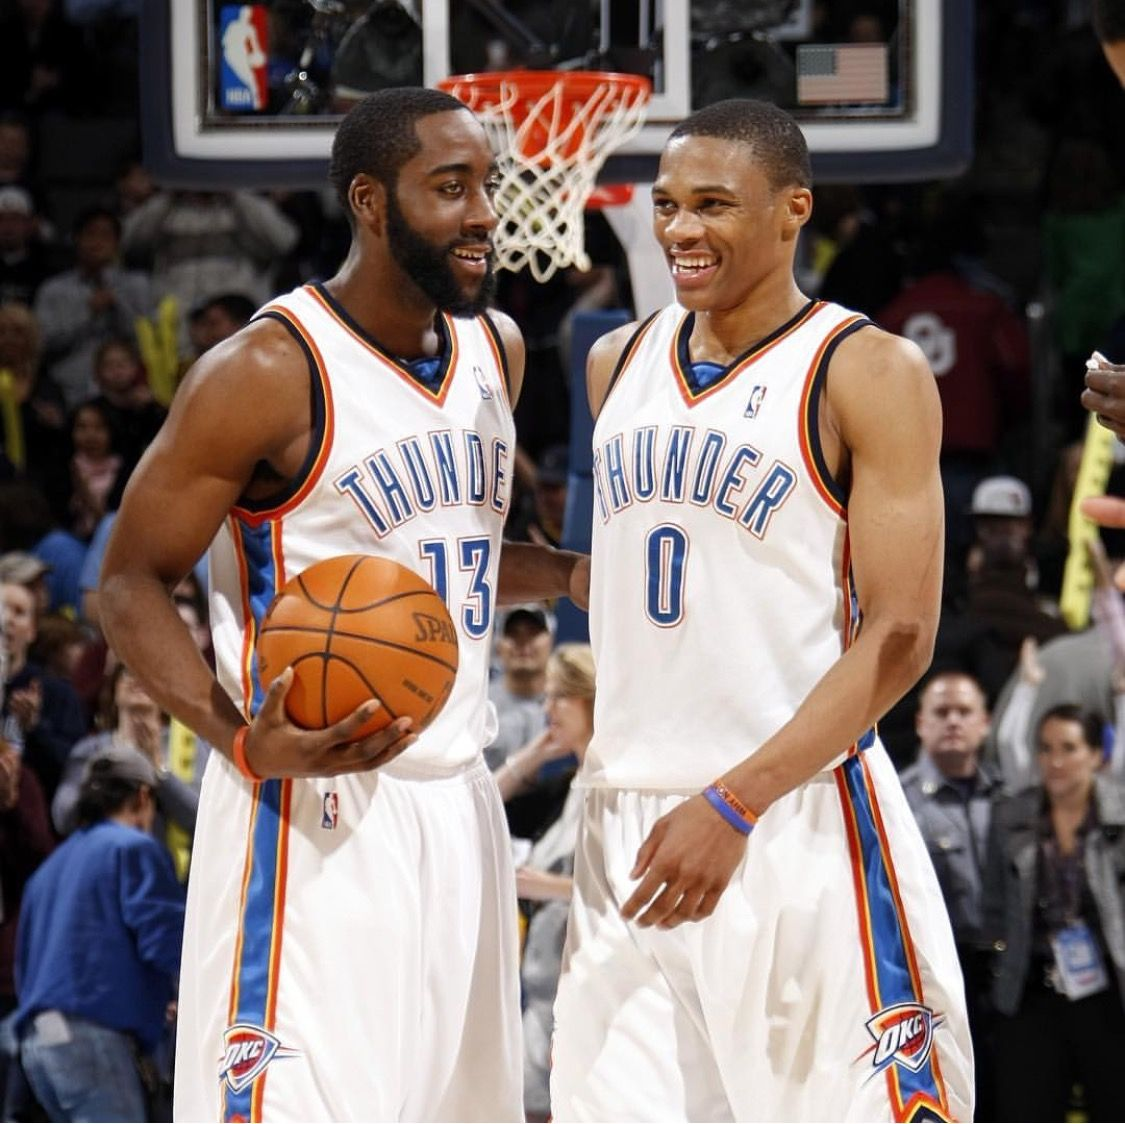 James Harden In Okc: Little Throwback With James Harden And Russell Westbrook